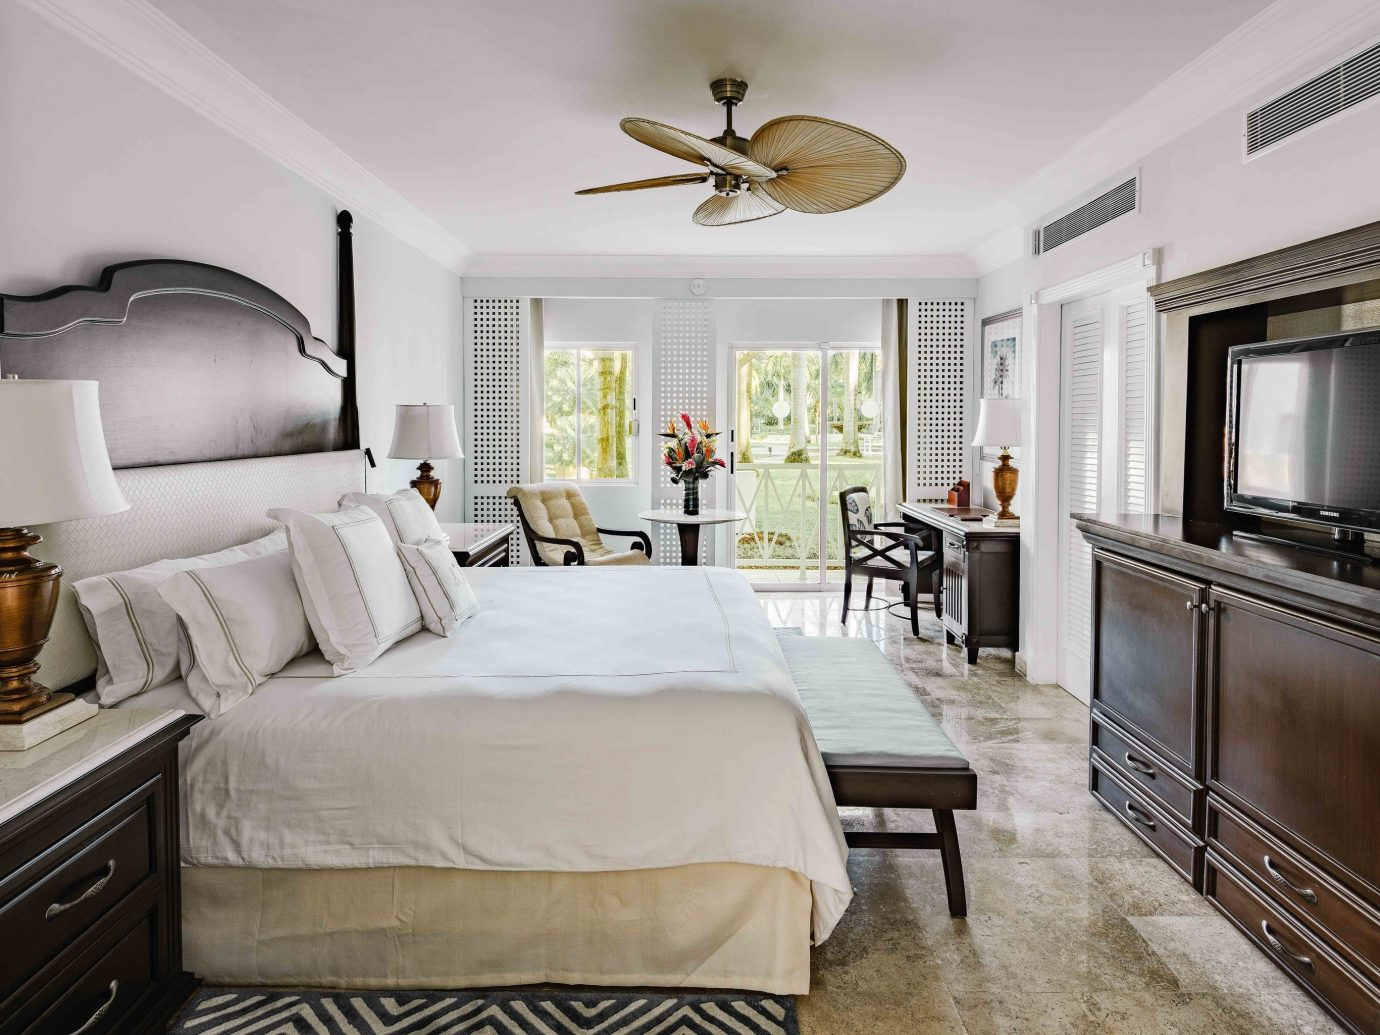 All-inclusive All-Inclusive Resorts Mexico Riviera Maya, Mexico indoor bed wall floor room Bedroom window interior design ceiling bed frame home hotel real estate living room Suite estate interior designer furniture several